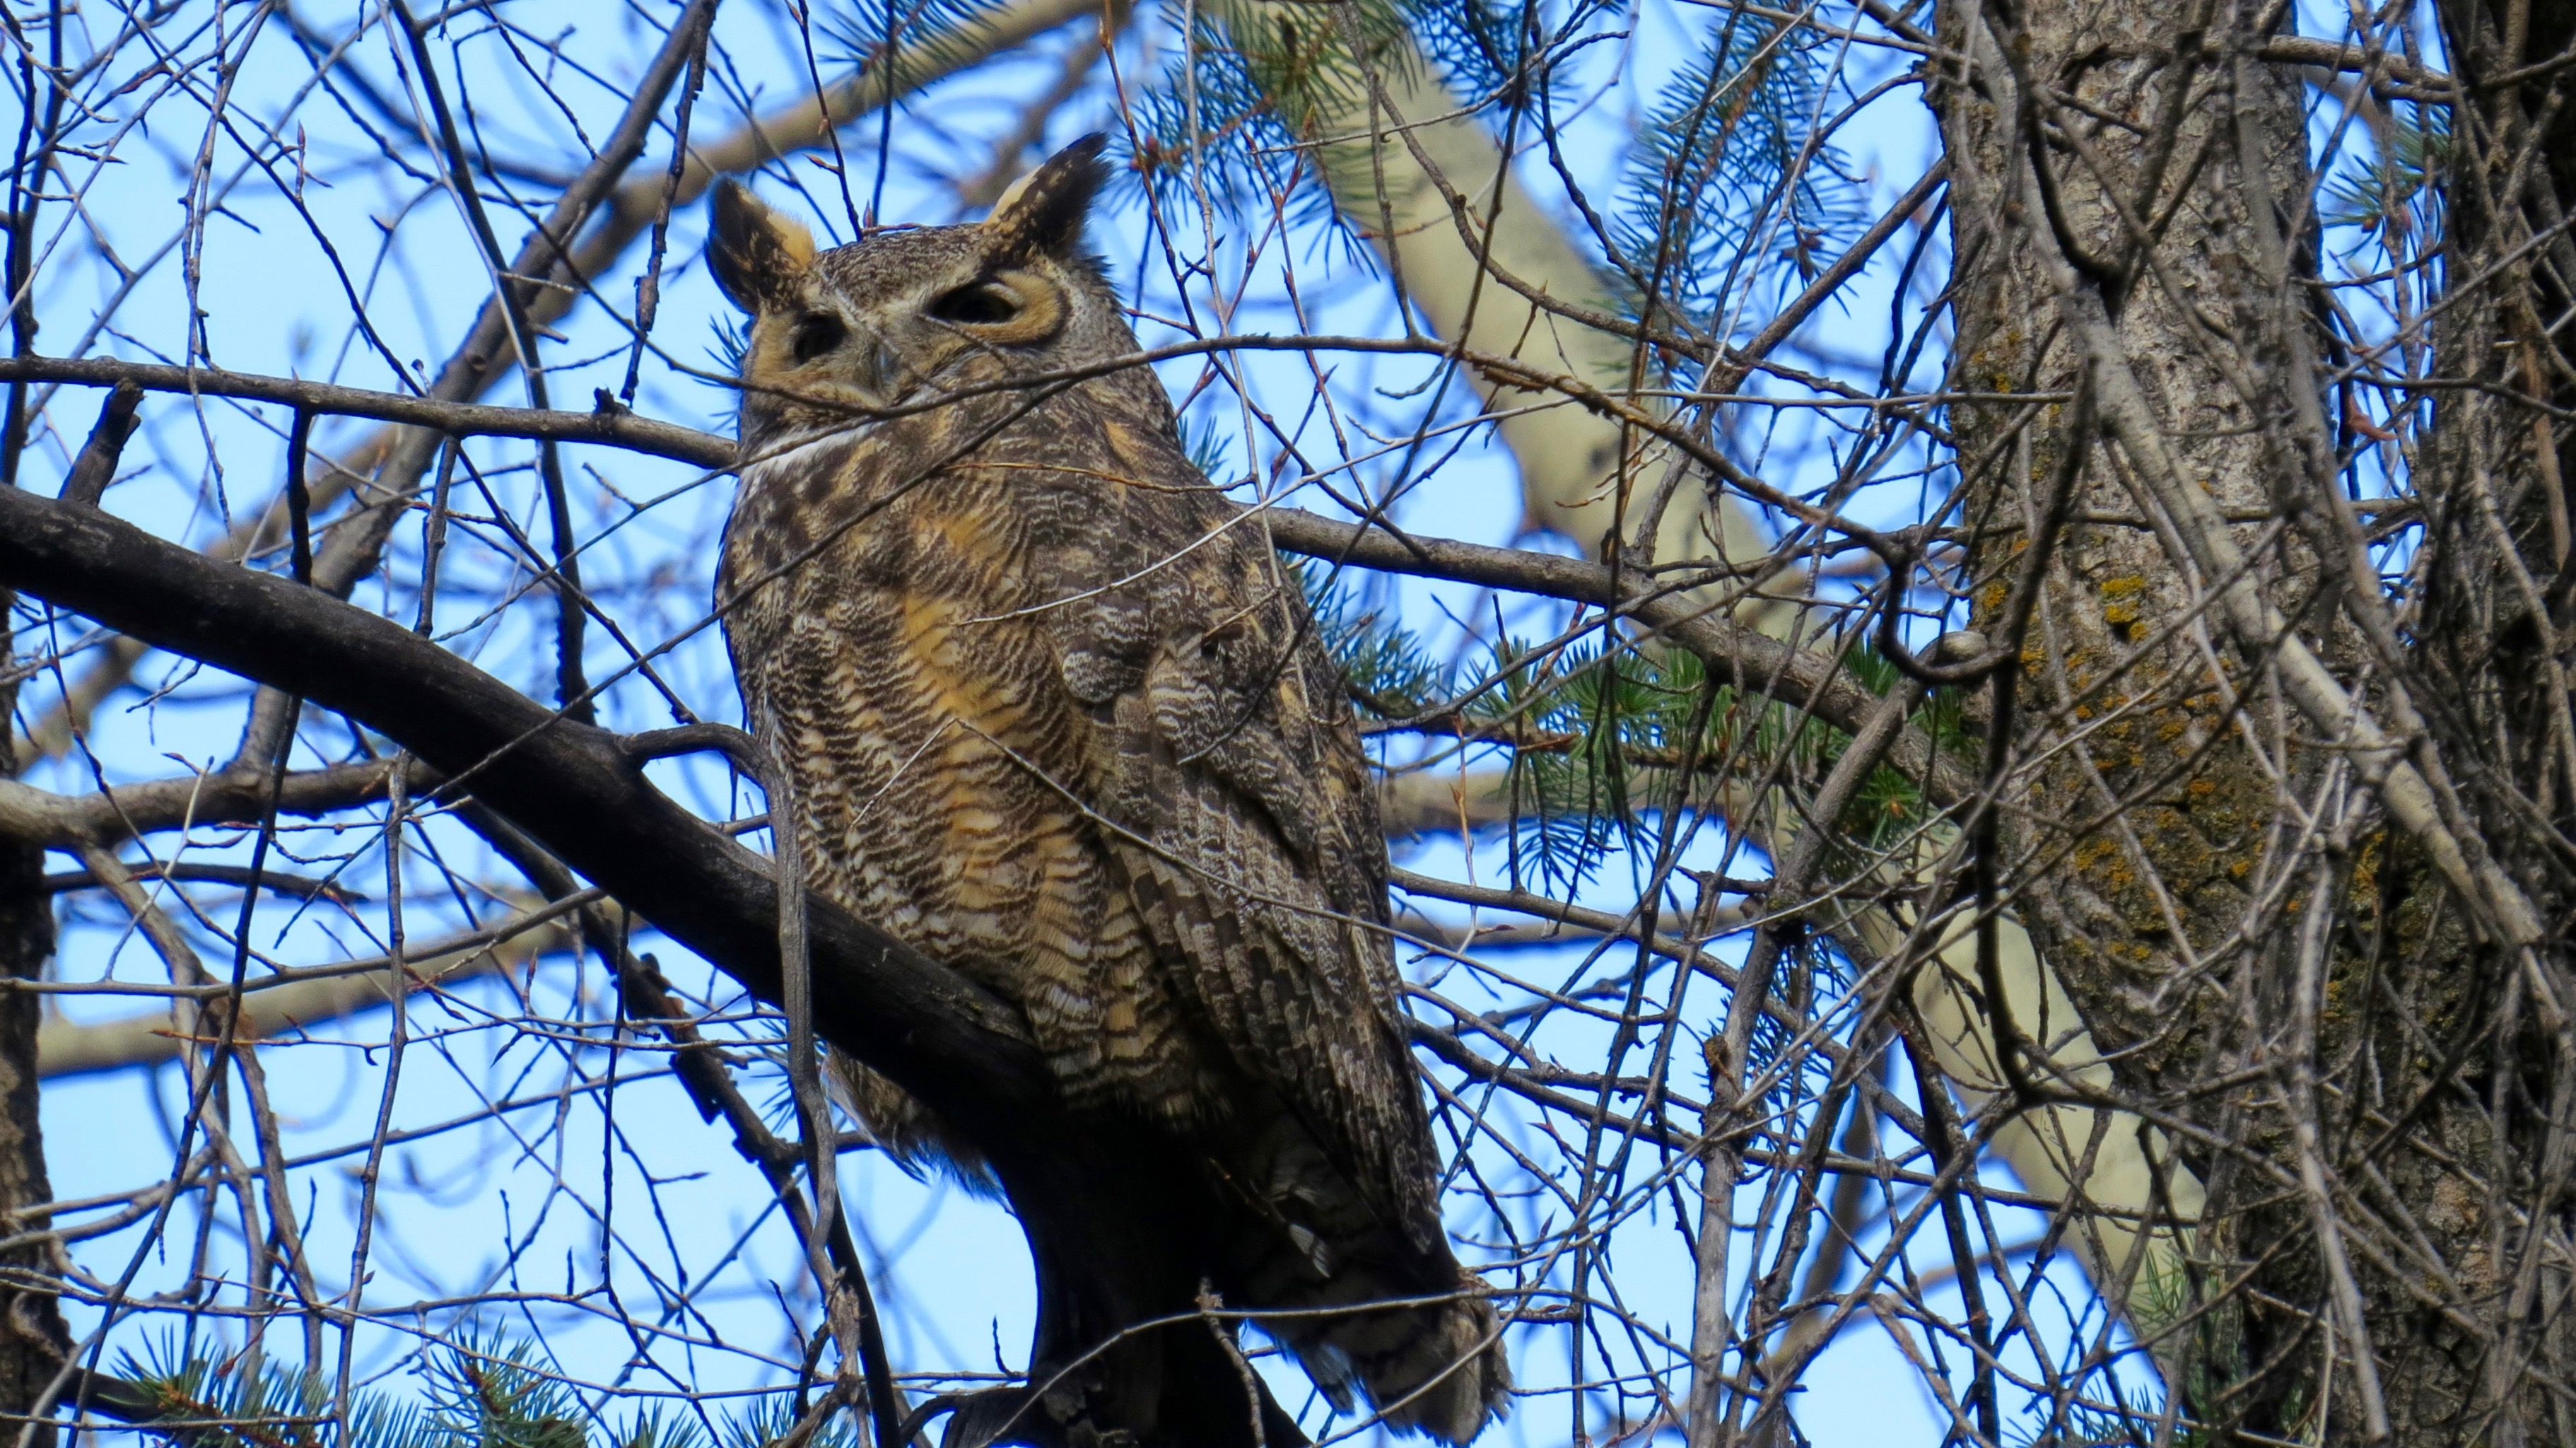 """The most exciting event locally this Spring is the birth of a Great Horned Owl. The family is """"in residence,"""" living in a tall conifer in the middle of town. Dad, pictured here, usually hangs out on a nearby snag to patrol and watch for the annoying crows who often bother the baby."""